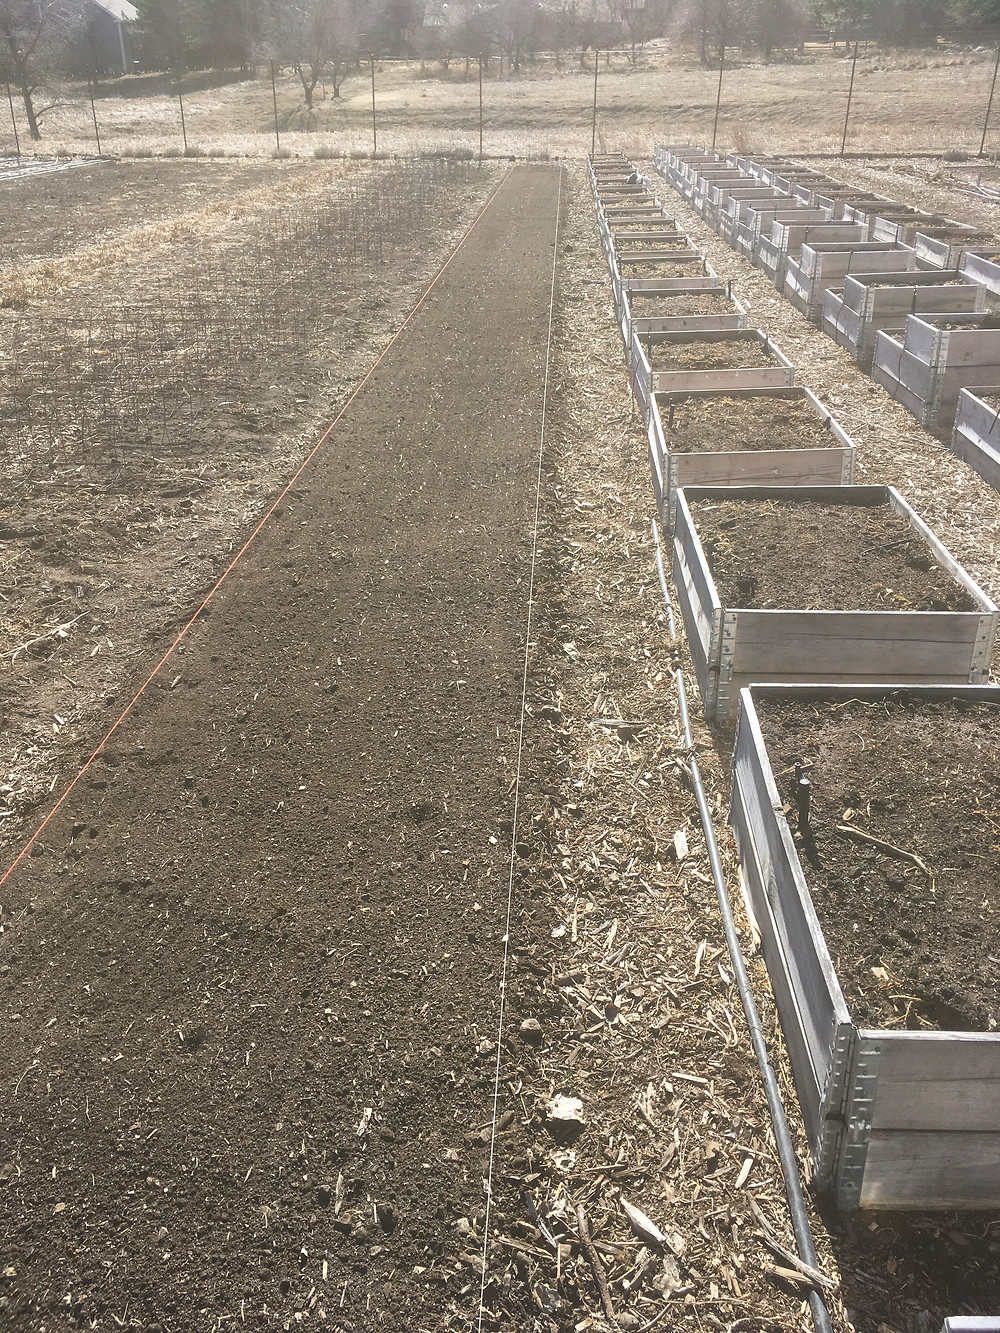 freshly planted rows